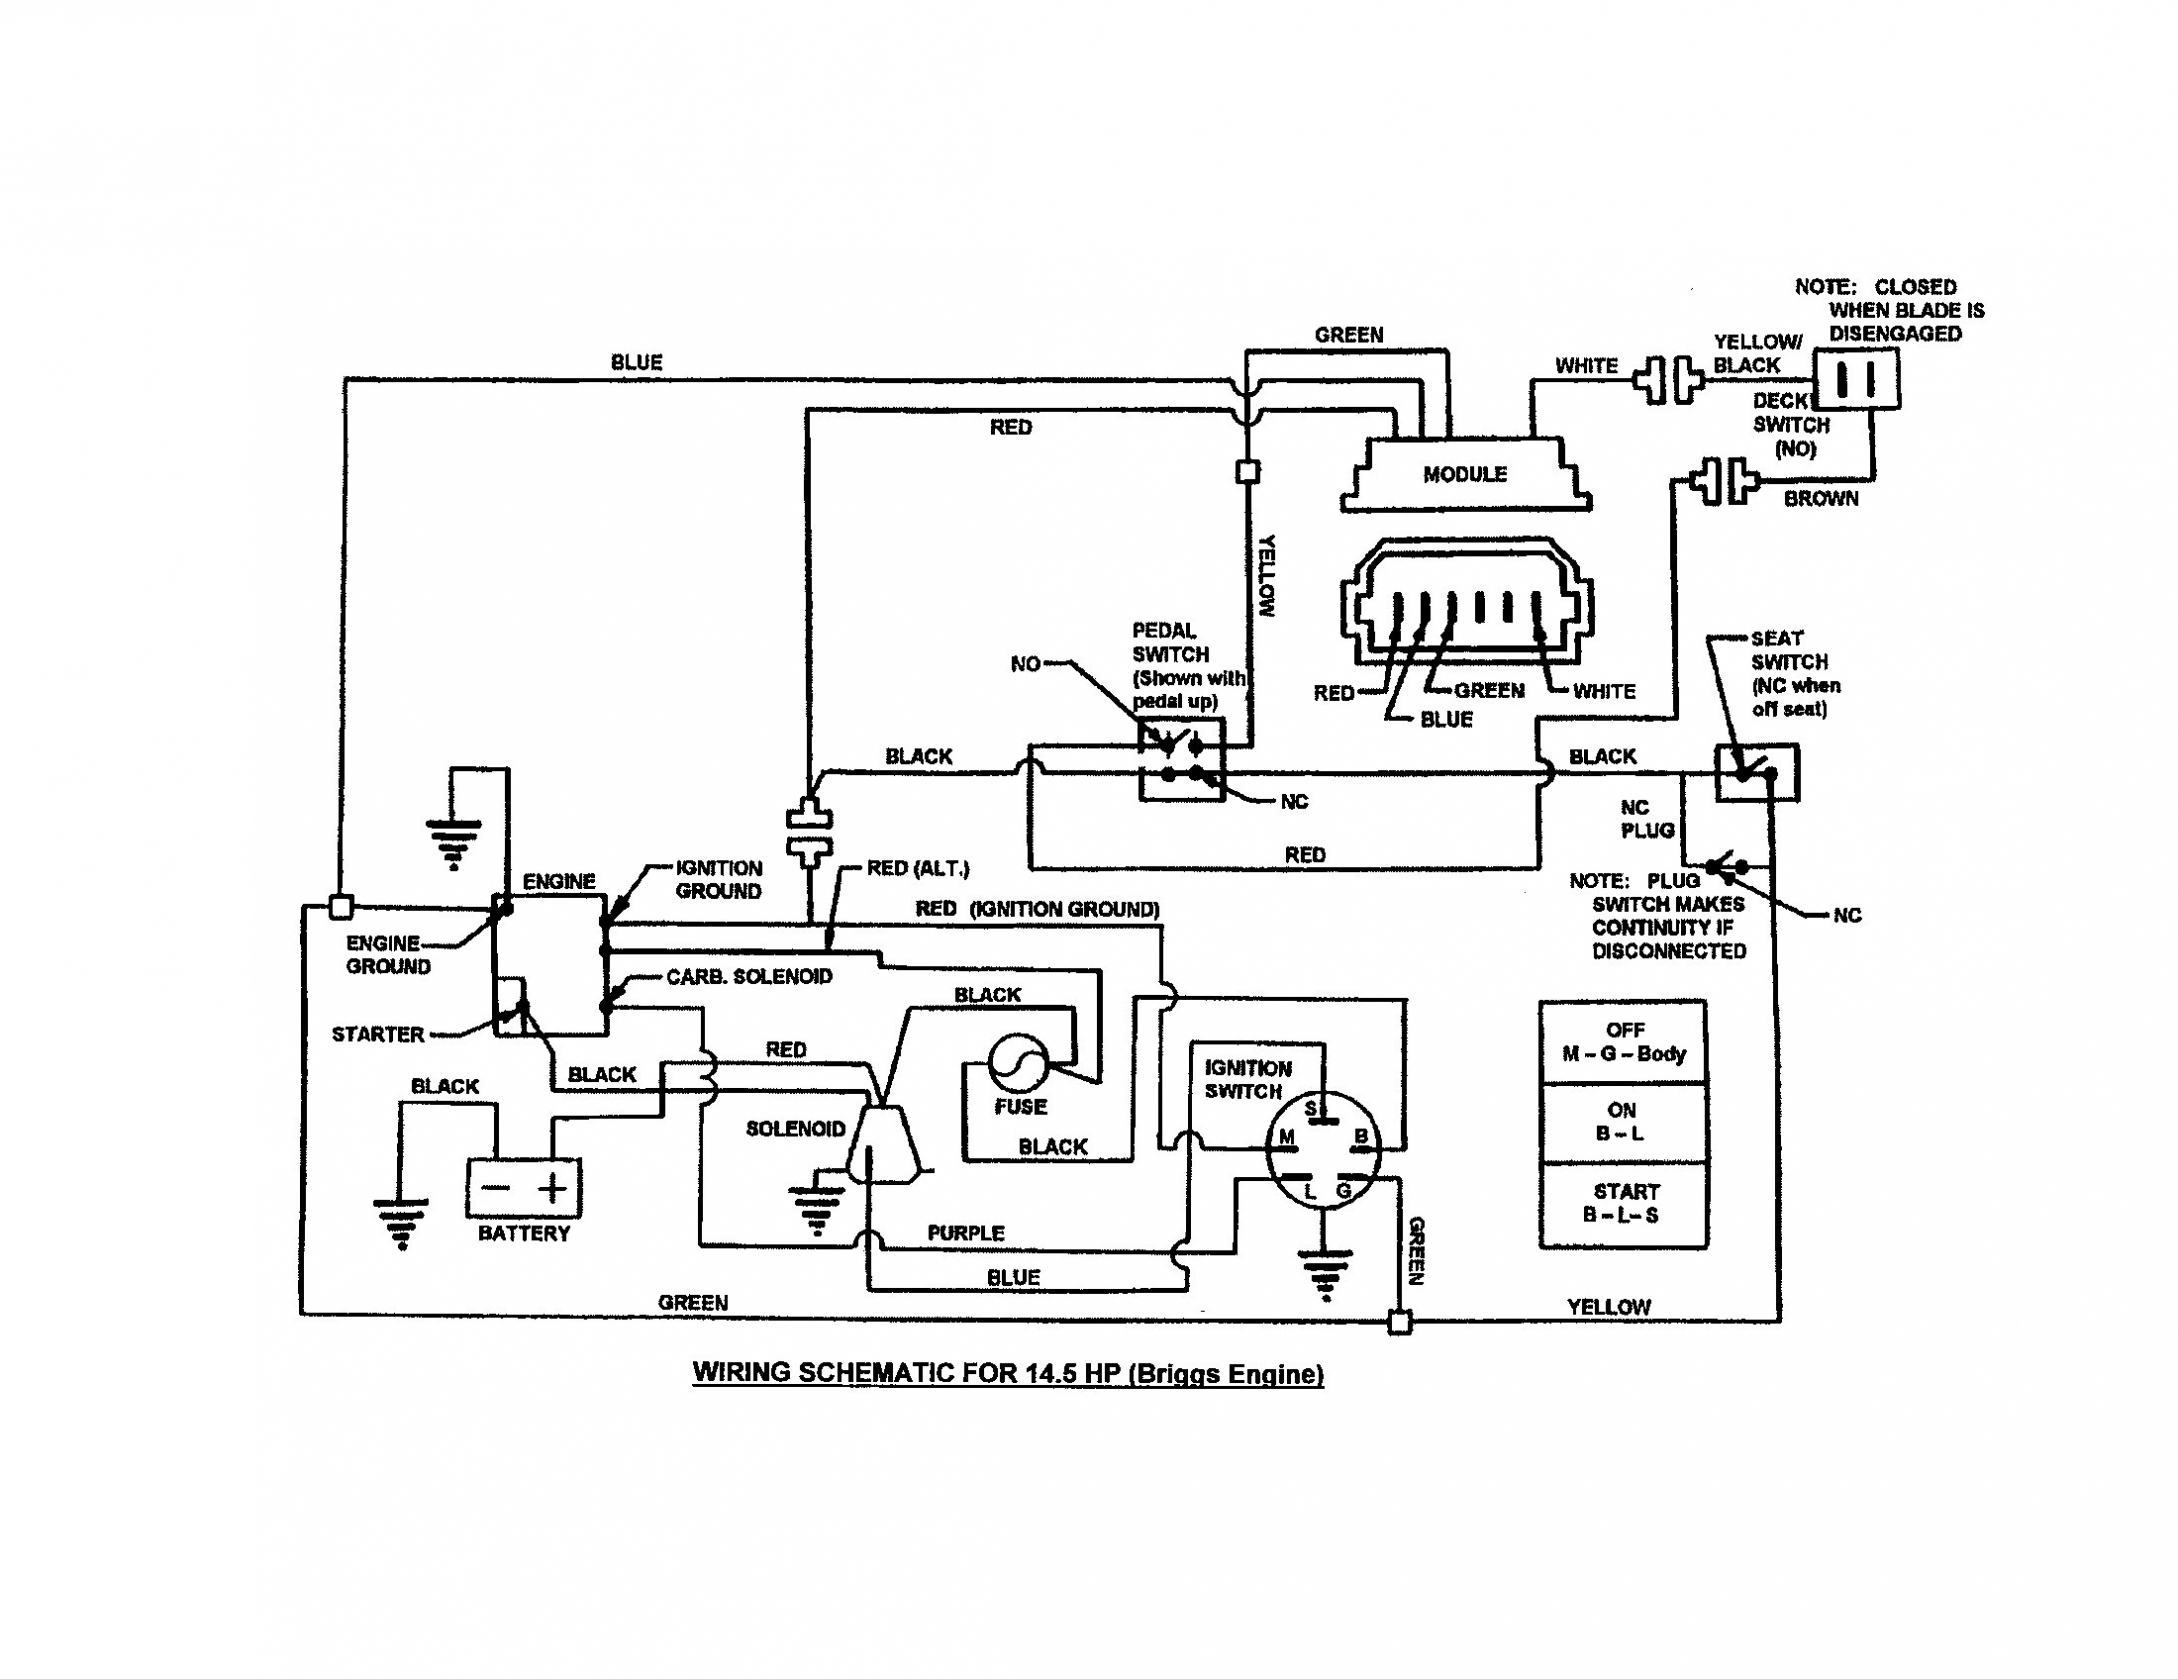 Briggs And Stratton Starter Solenoid Wiring Diagram – Starter - Briggs And Stratton V-Twin Wiring Diagram